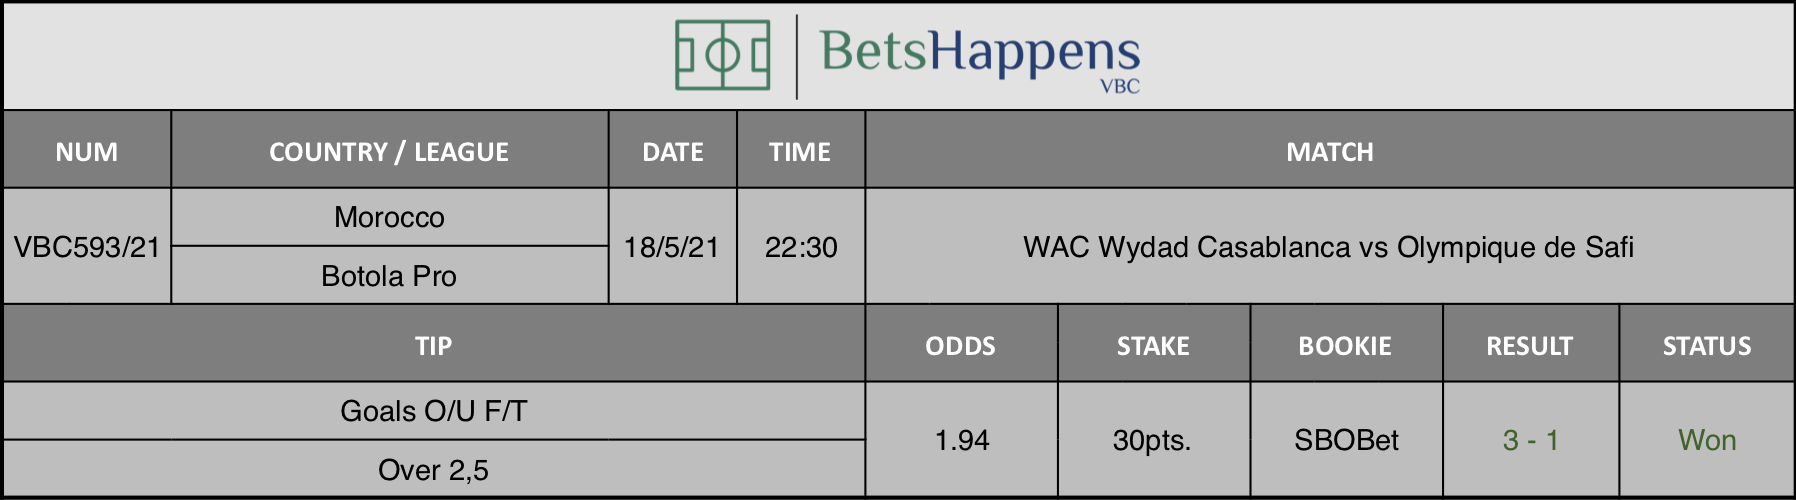 Results of our tip for the WAC Wydad Casablanca vs Olympique de Safi match where Goals O/U F/T Over 2,5 is recommended.